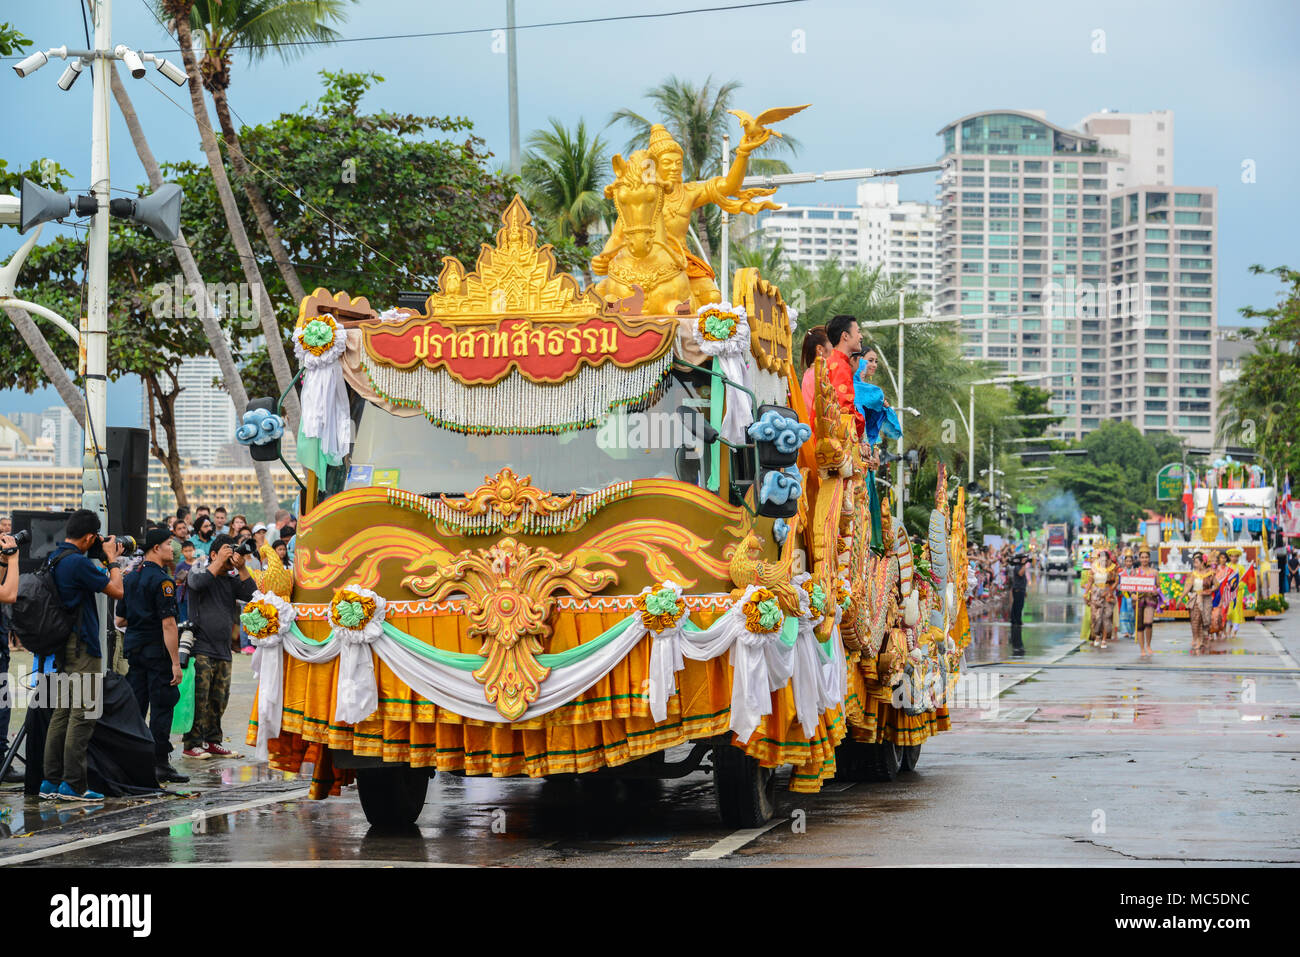 Pattaya, Thailand - November 19, 2017: The Sanctuary of Truth parade marching on the 50th anniversary ASEAN International Fleet Review 2017 to promote - Stock Image